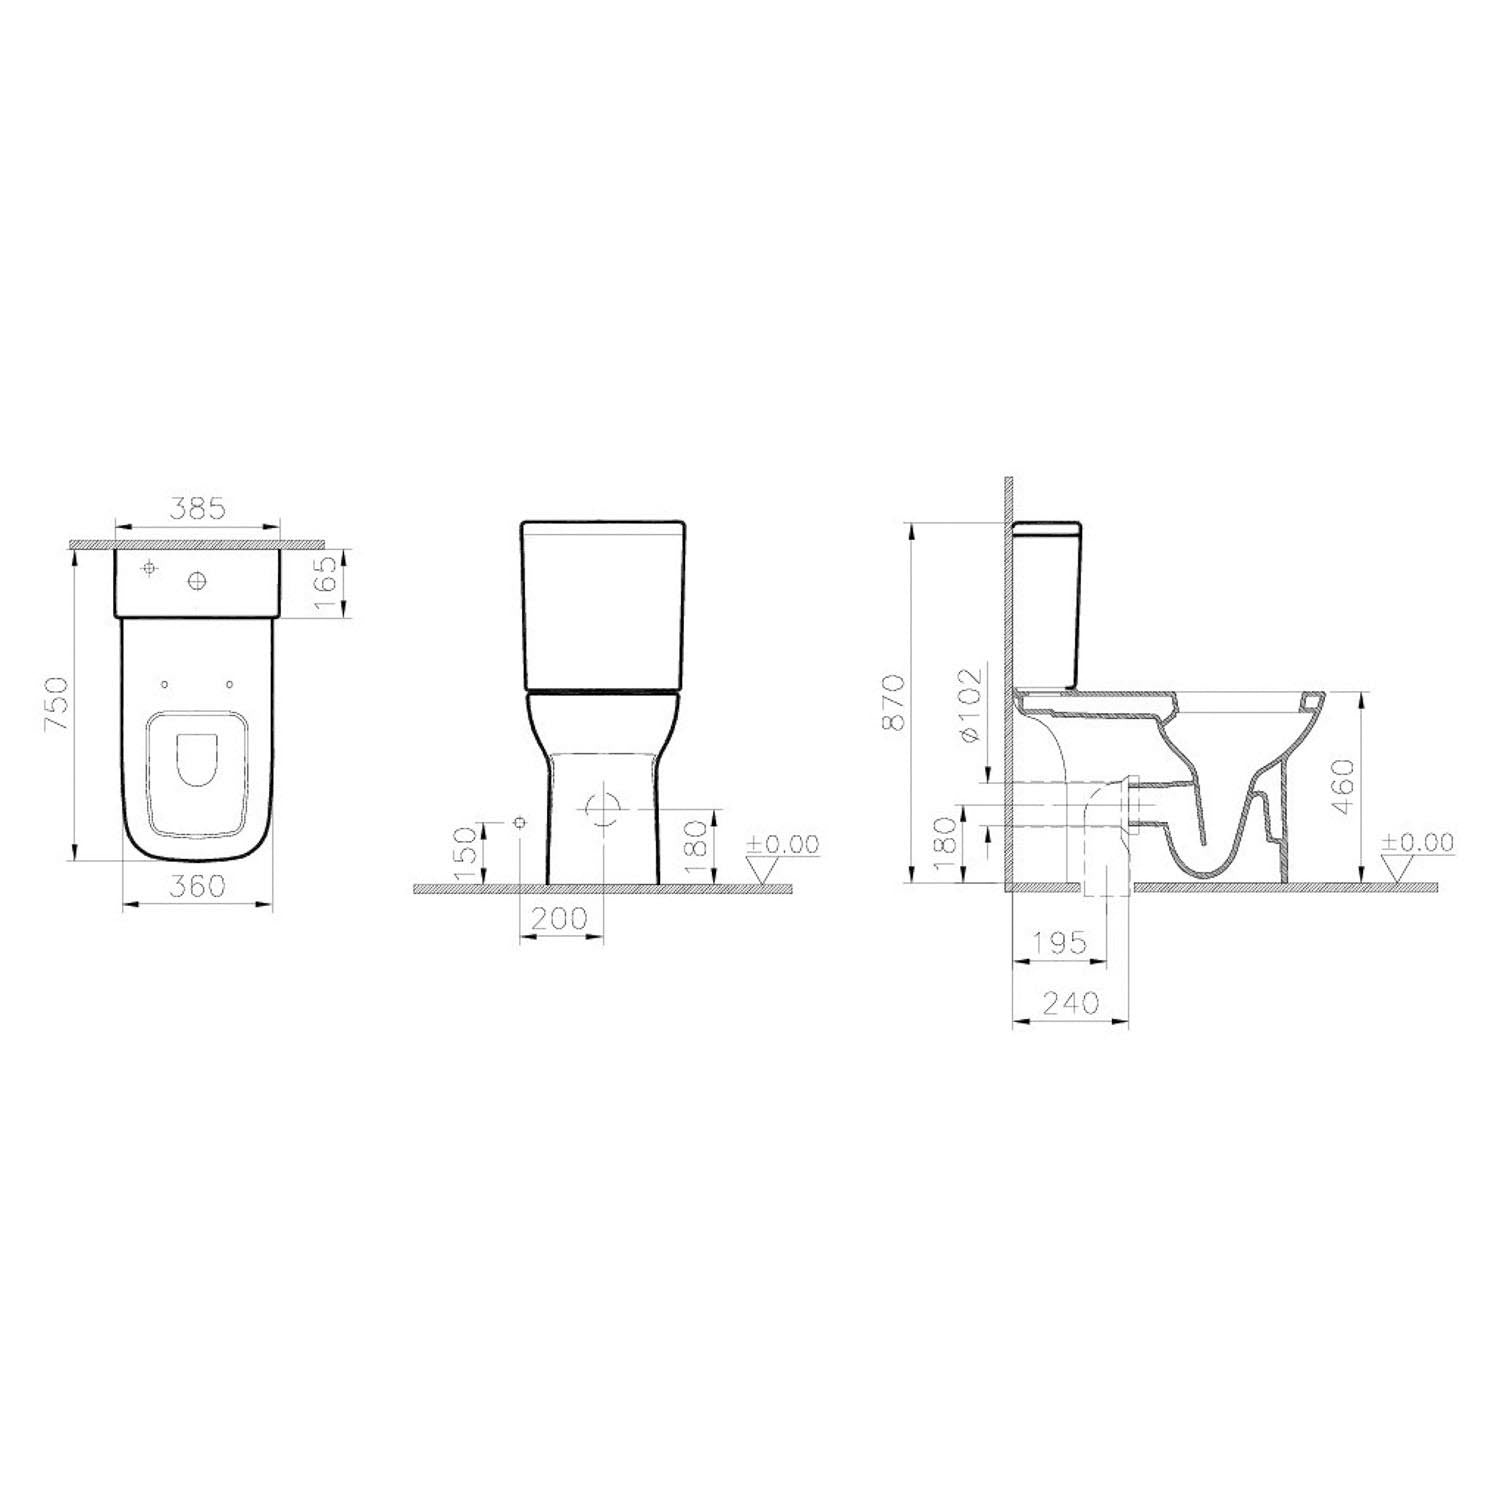 Consilio Comfort Height Close Coupled Toilet dimensional drawing